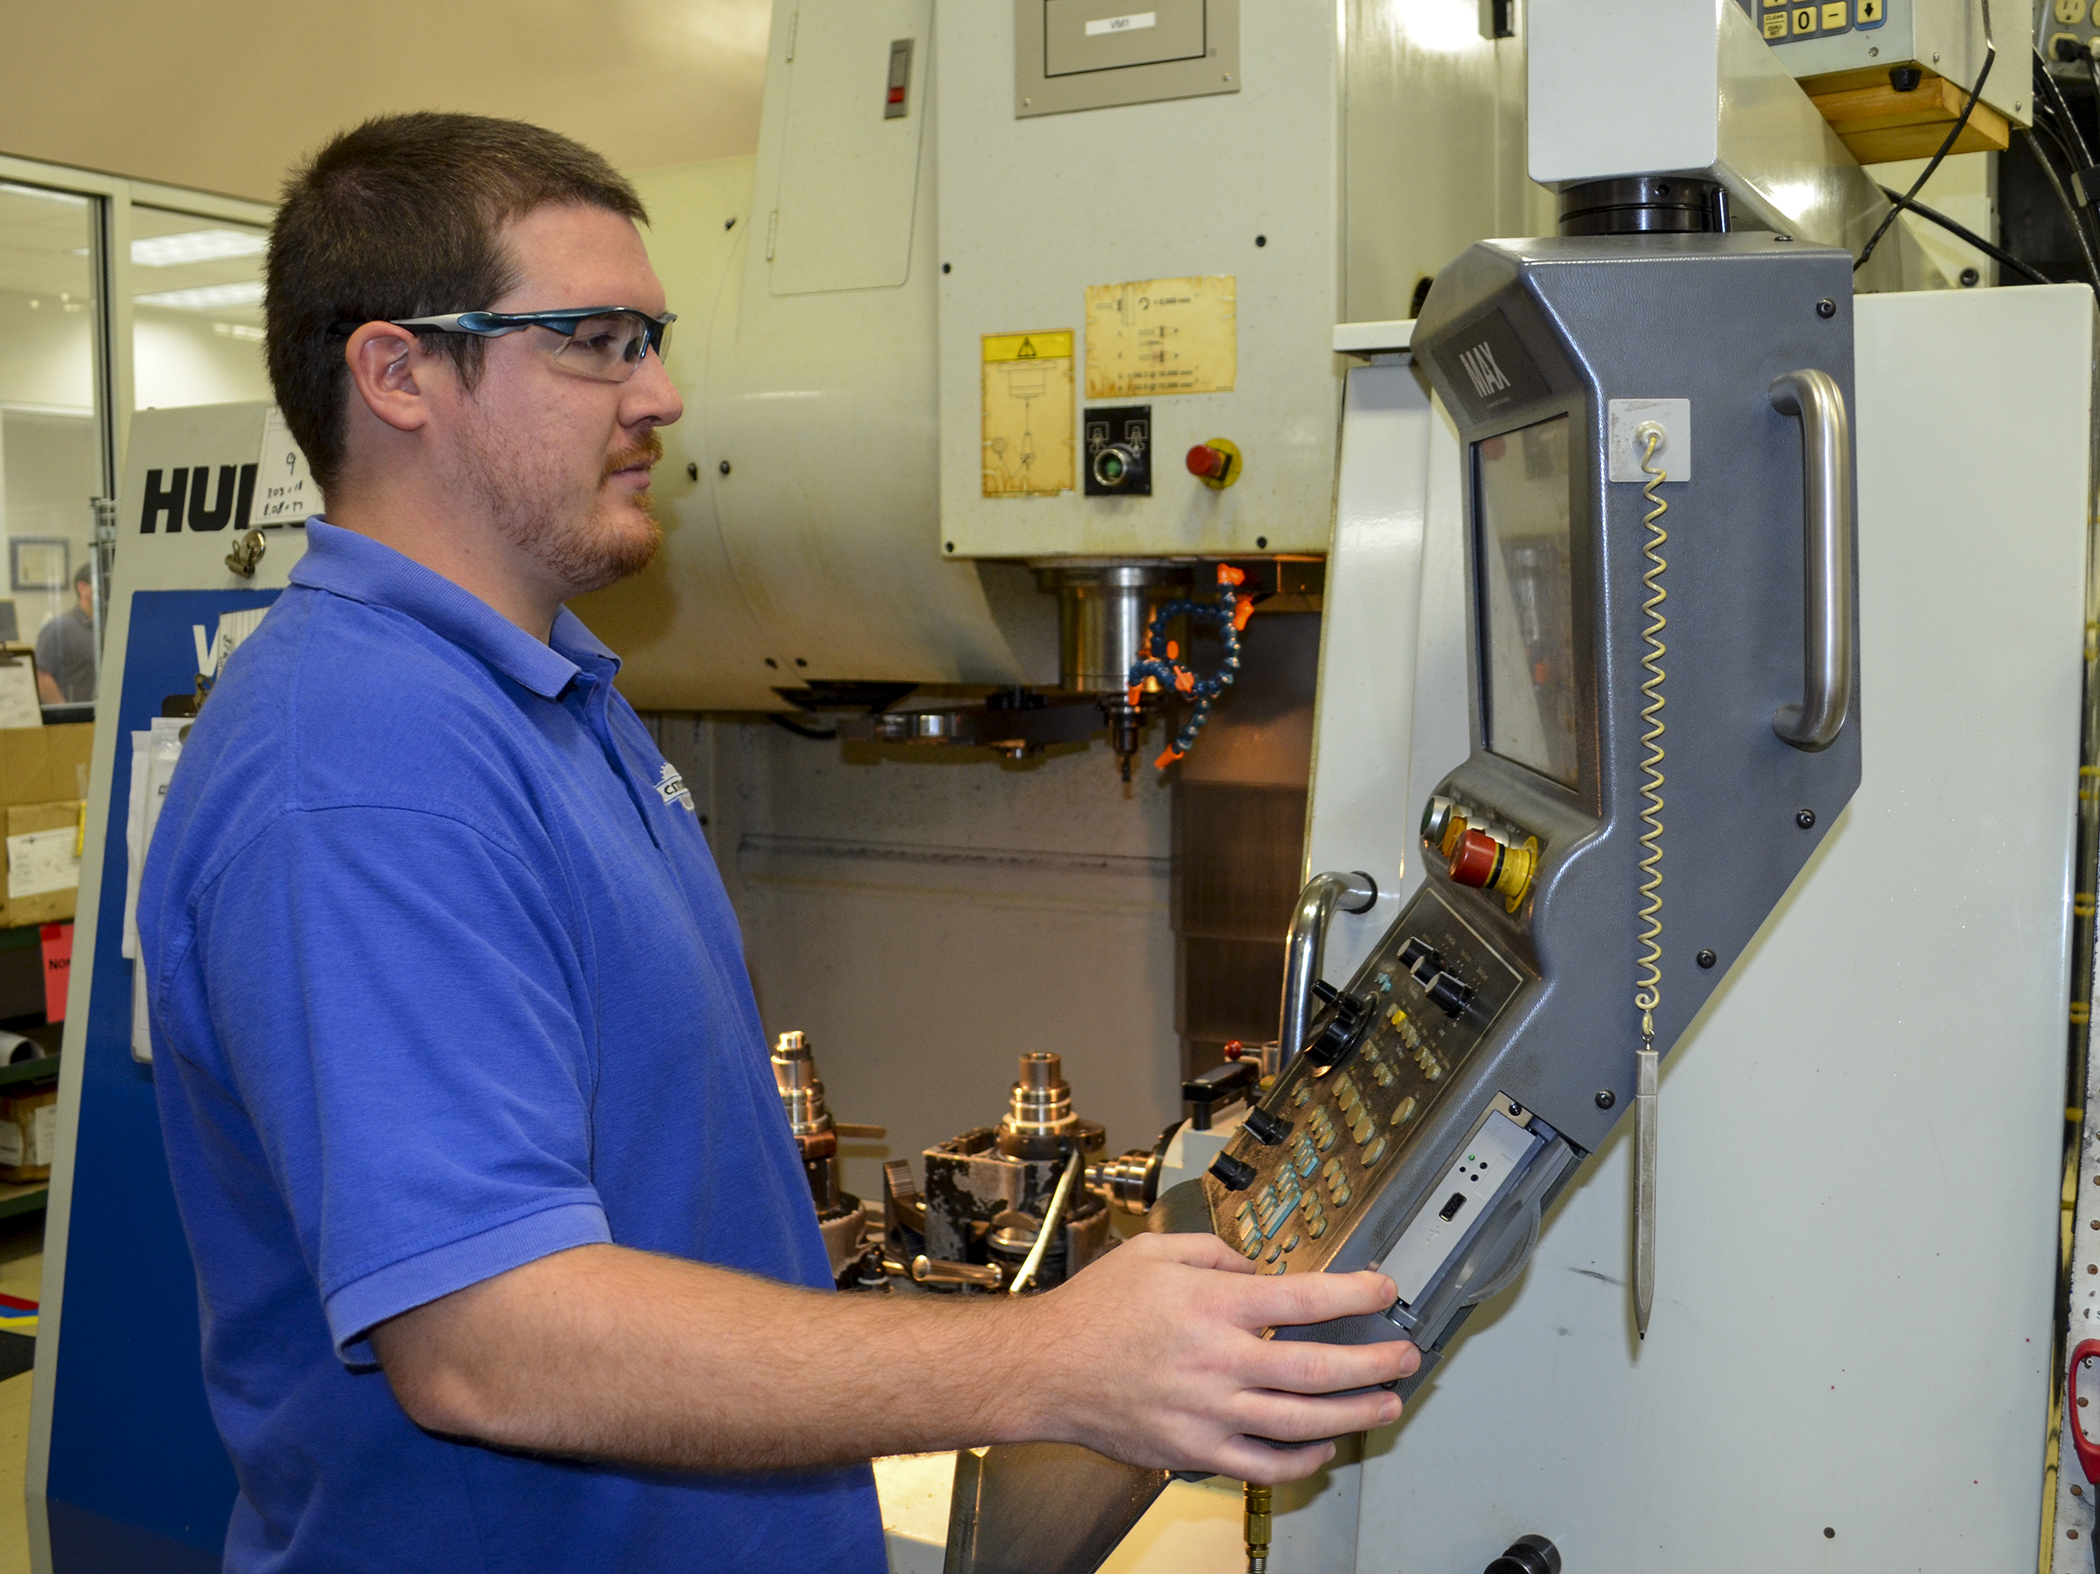 Andrew Rungren operates a CNC mill to manufacture a part.